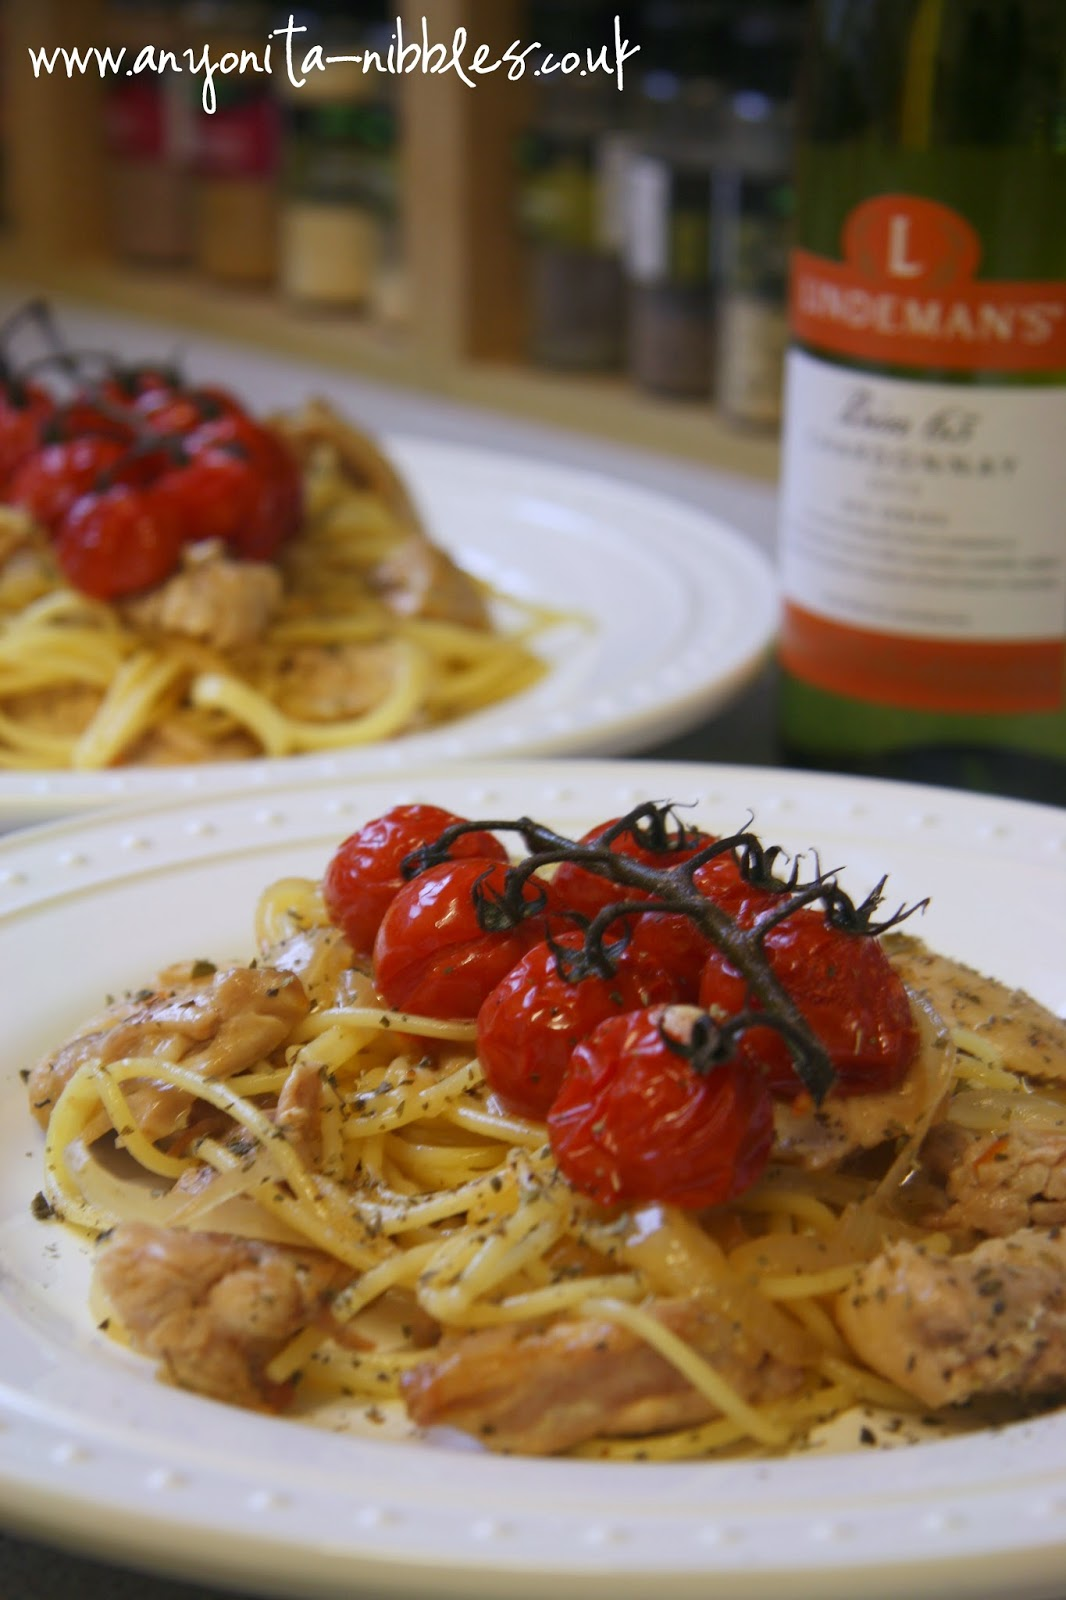 Blistered tomatoes with chicken, spaghetti and oregano from www.anyonita-nibbles.co.uk